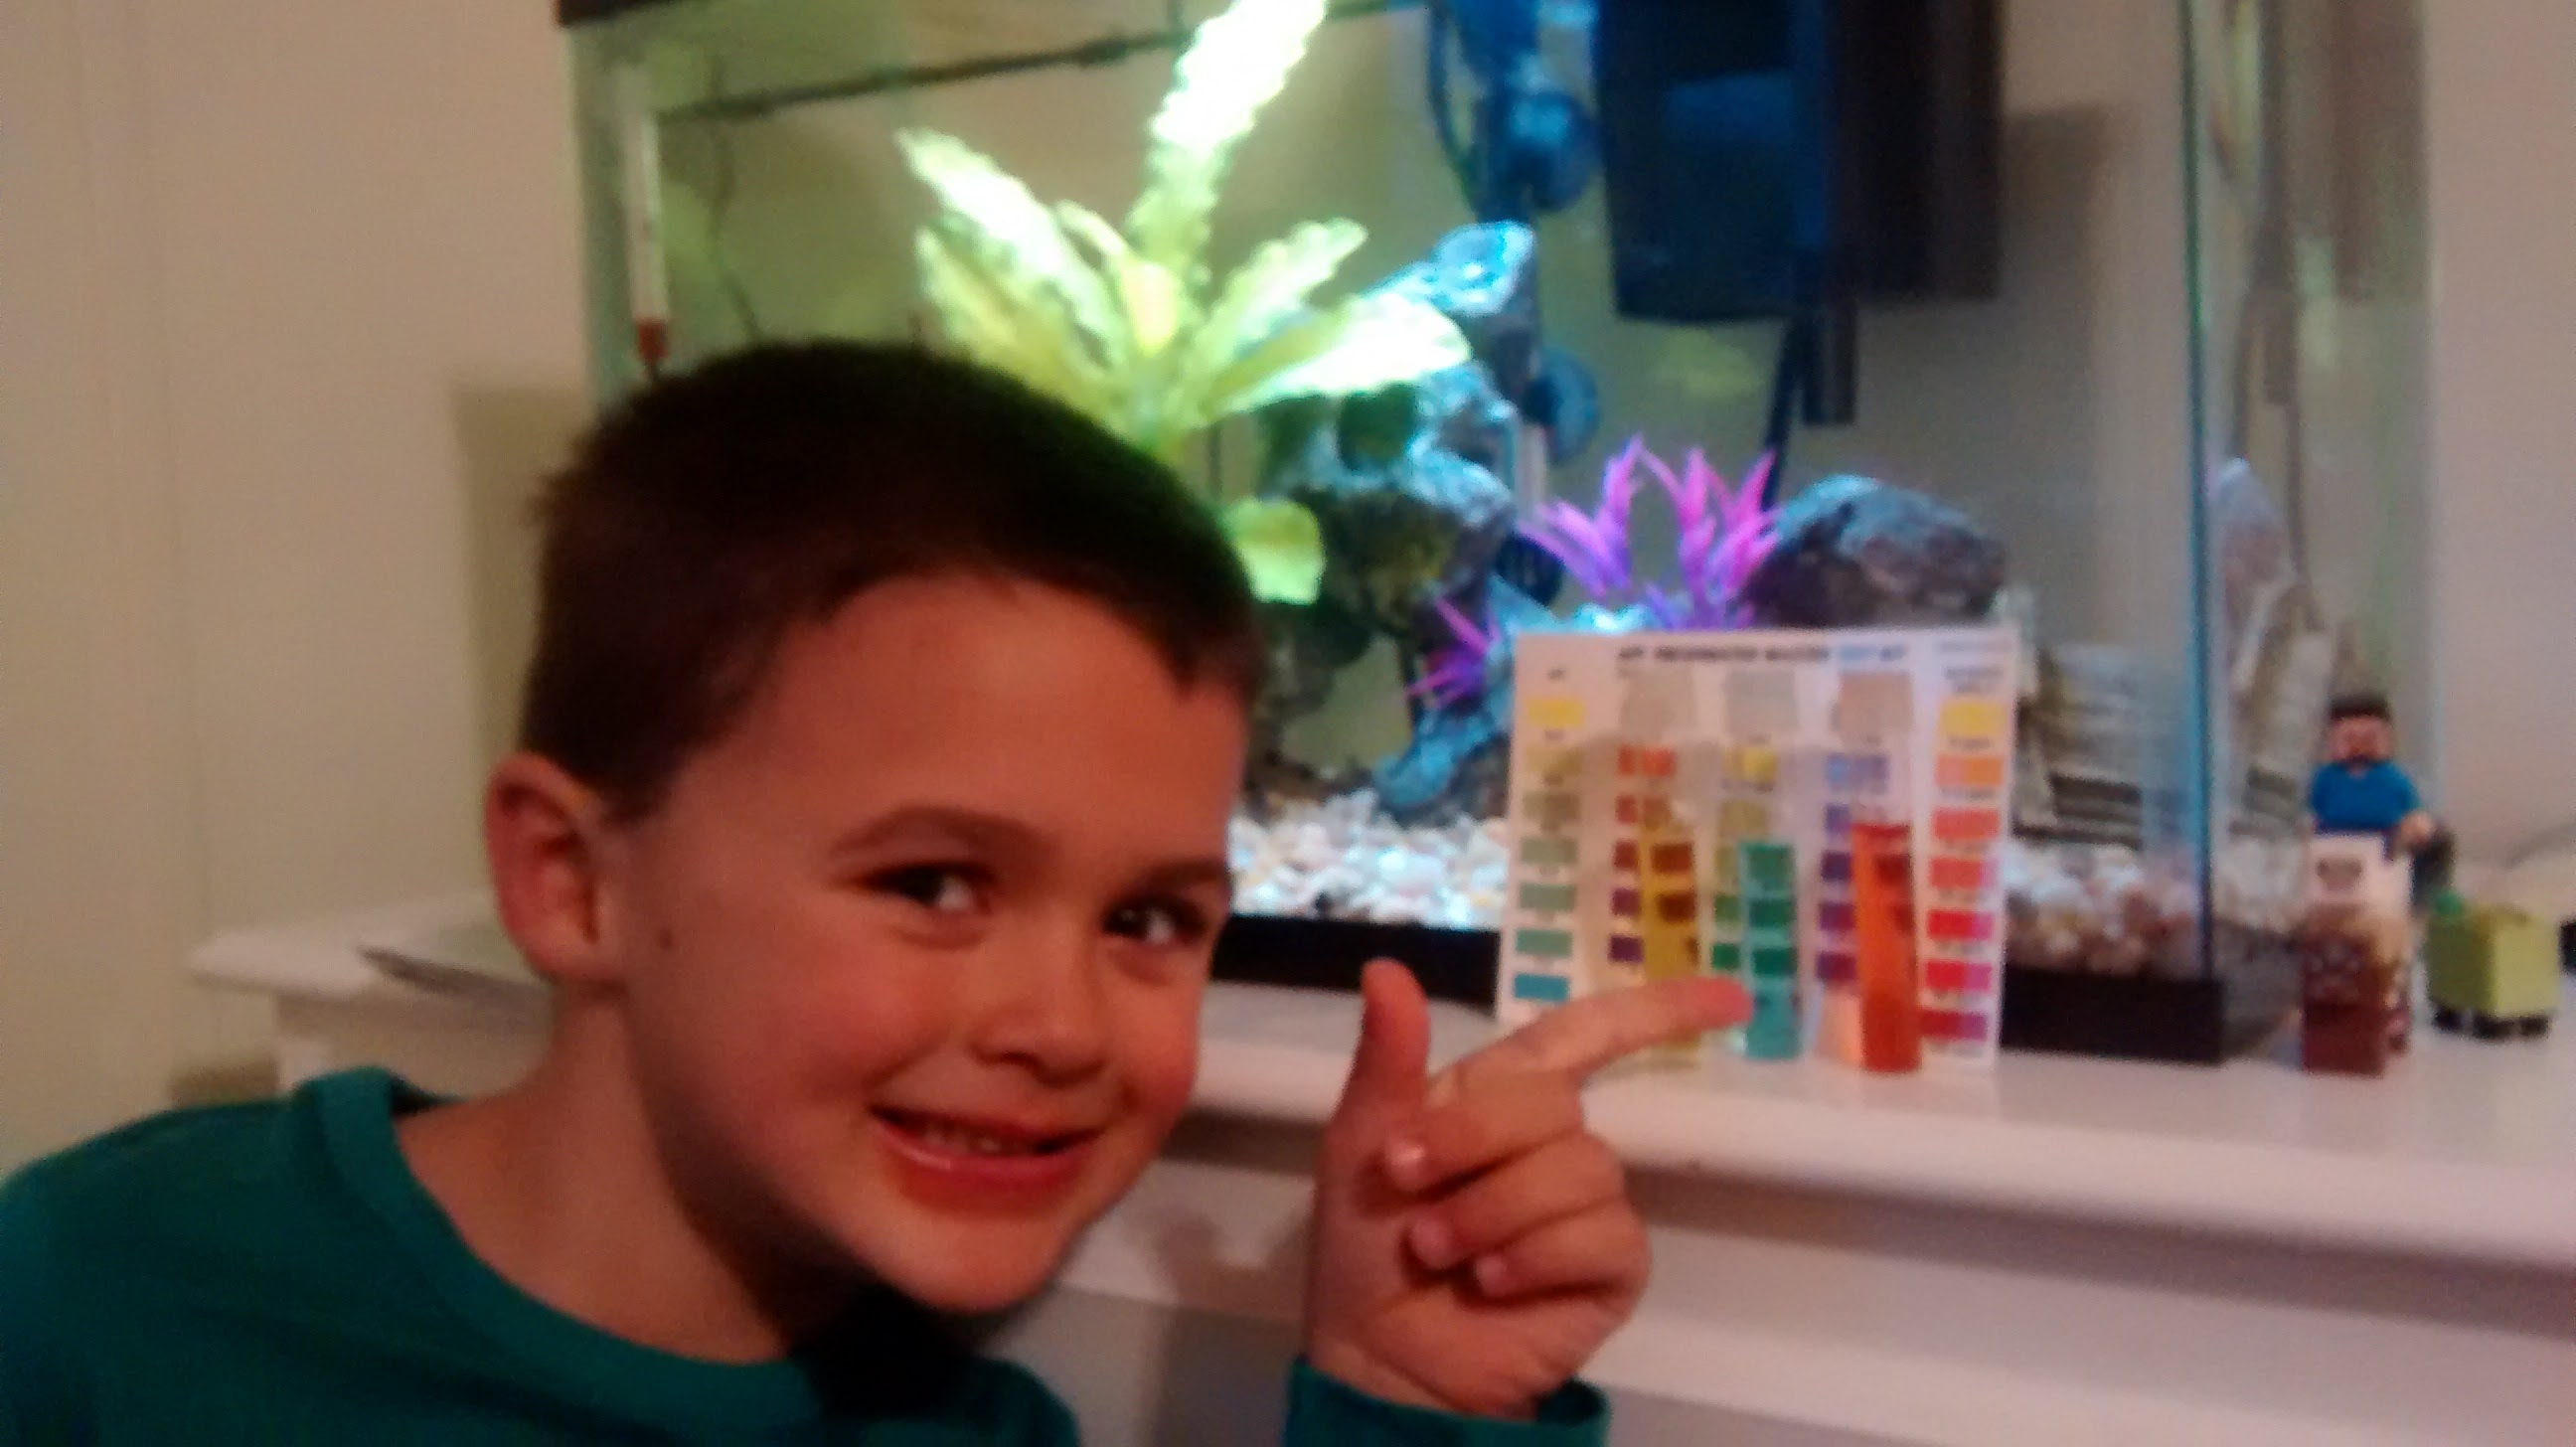 Learning in real life: Cycling a fish tank, the Nitrogen cycle, animal care, etc! This is natural learning at it's finest!